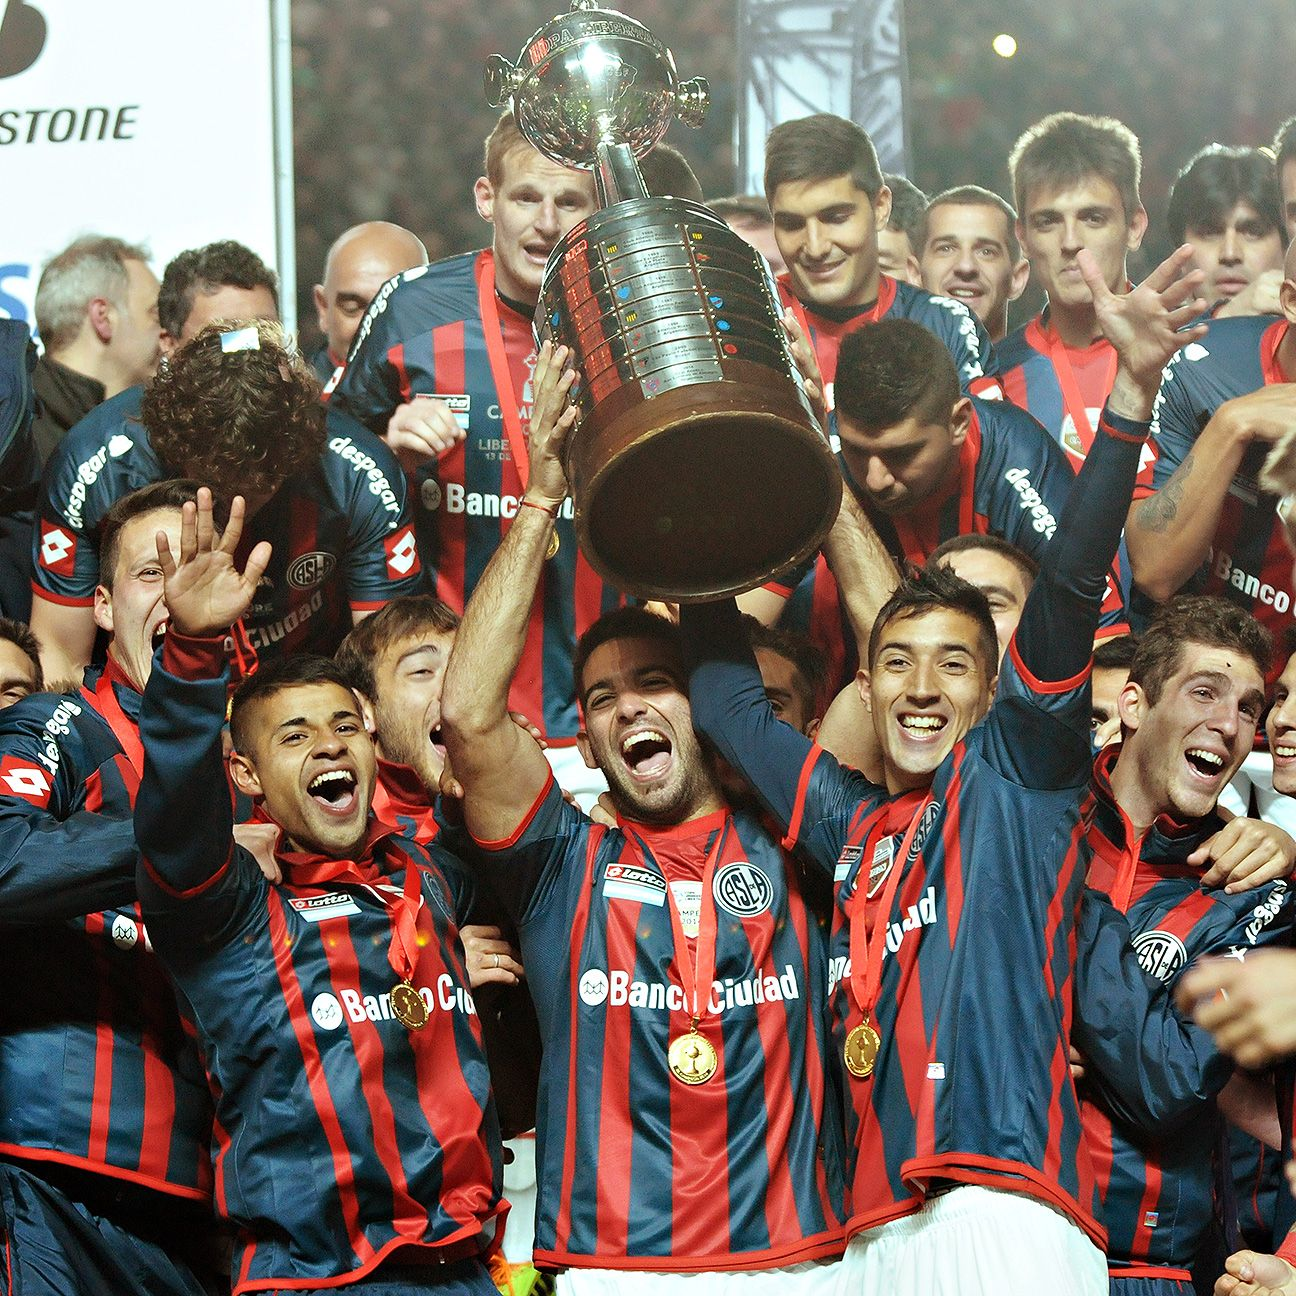 San Lorenzo stunned the South American continent by claiming their first Copa Libertadores in August.